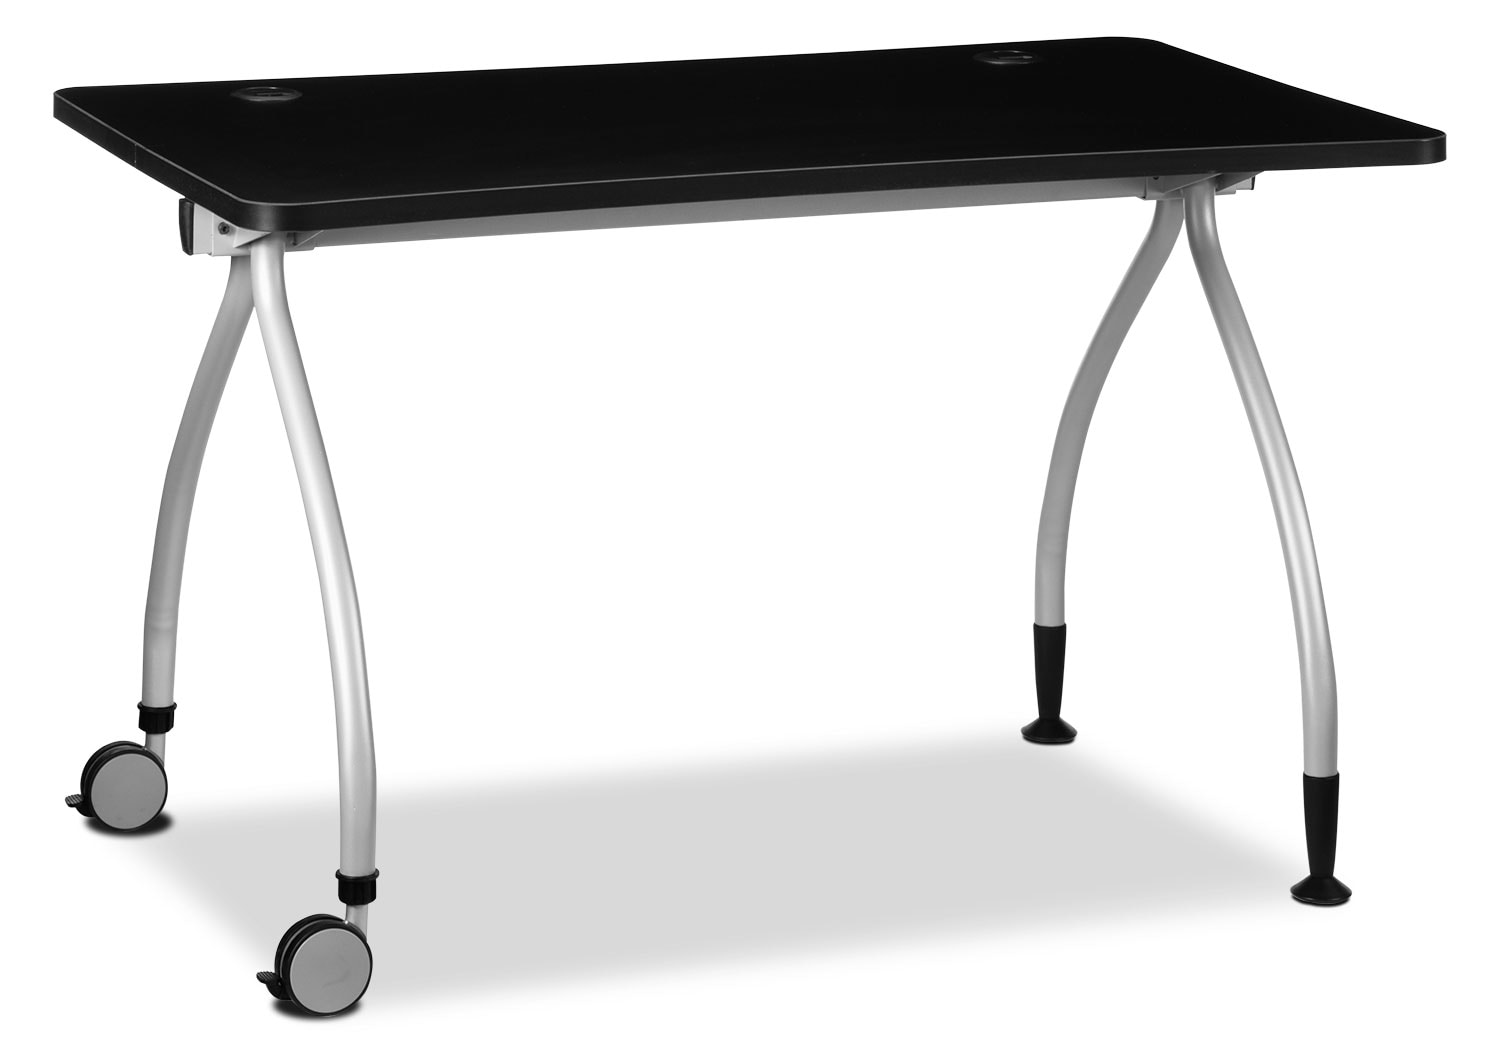 Home Office Furniture - Mori Desk - Black